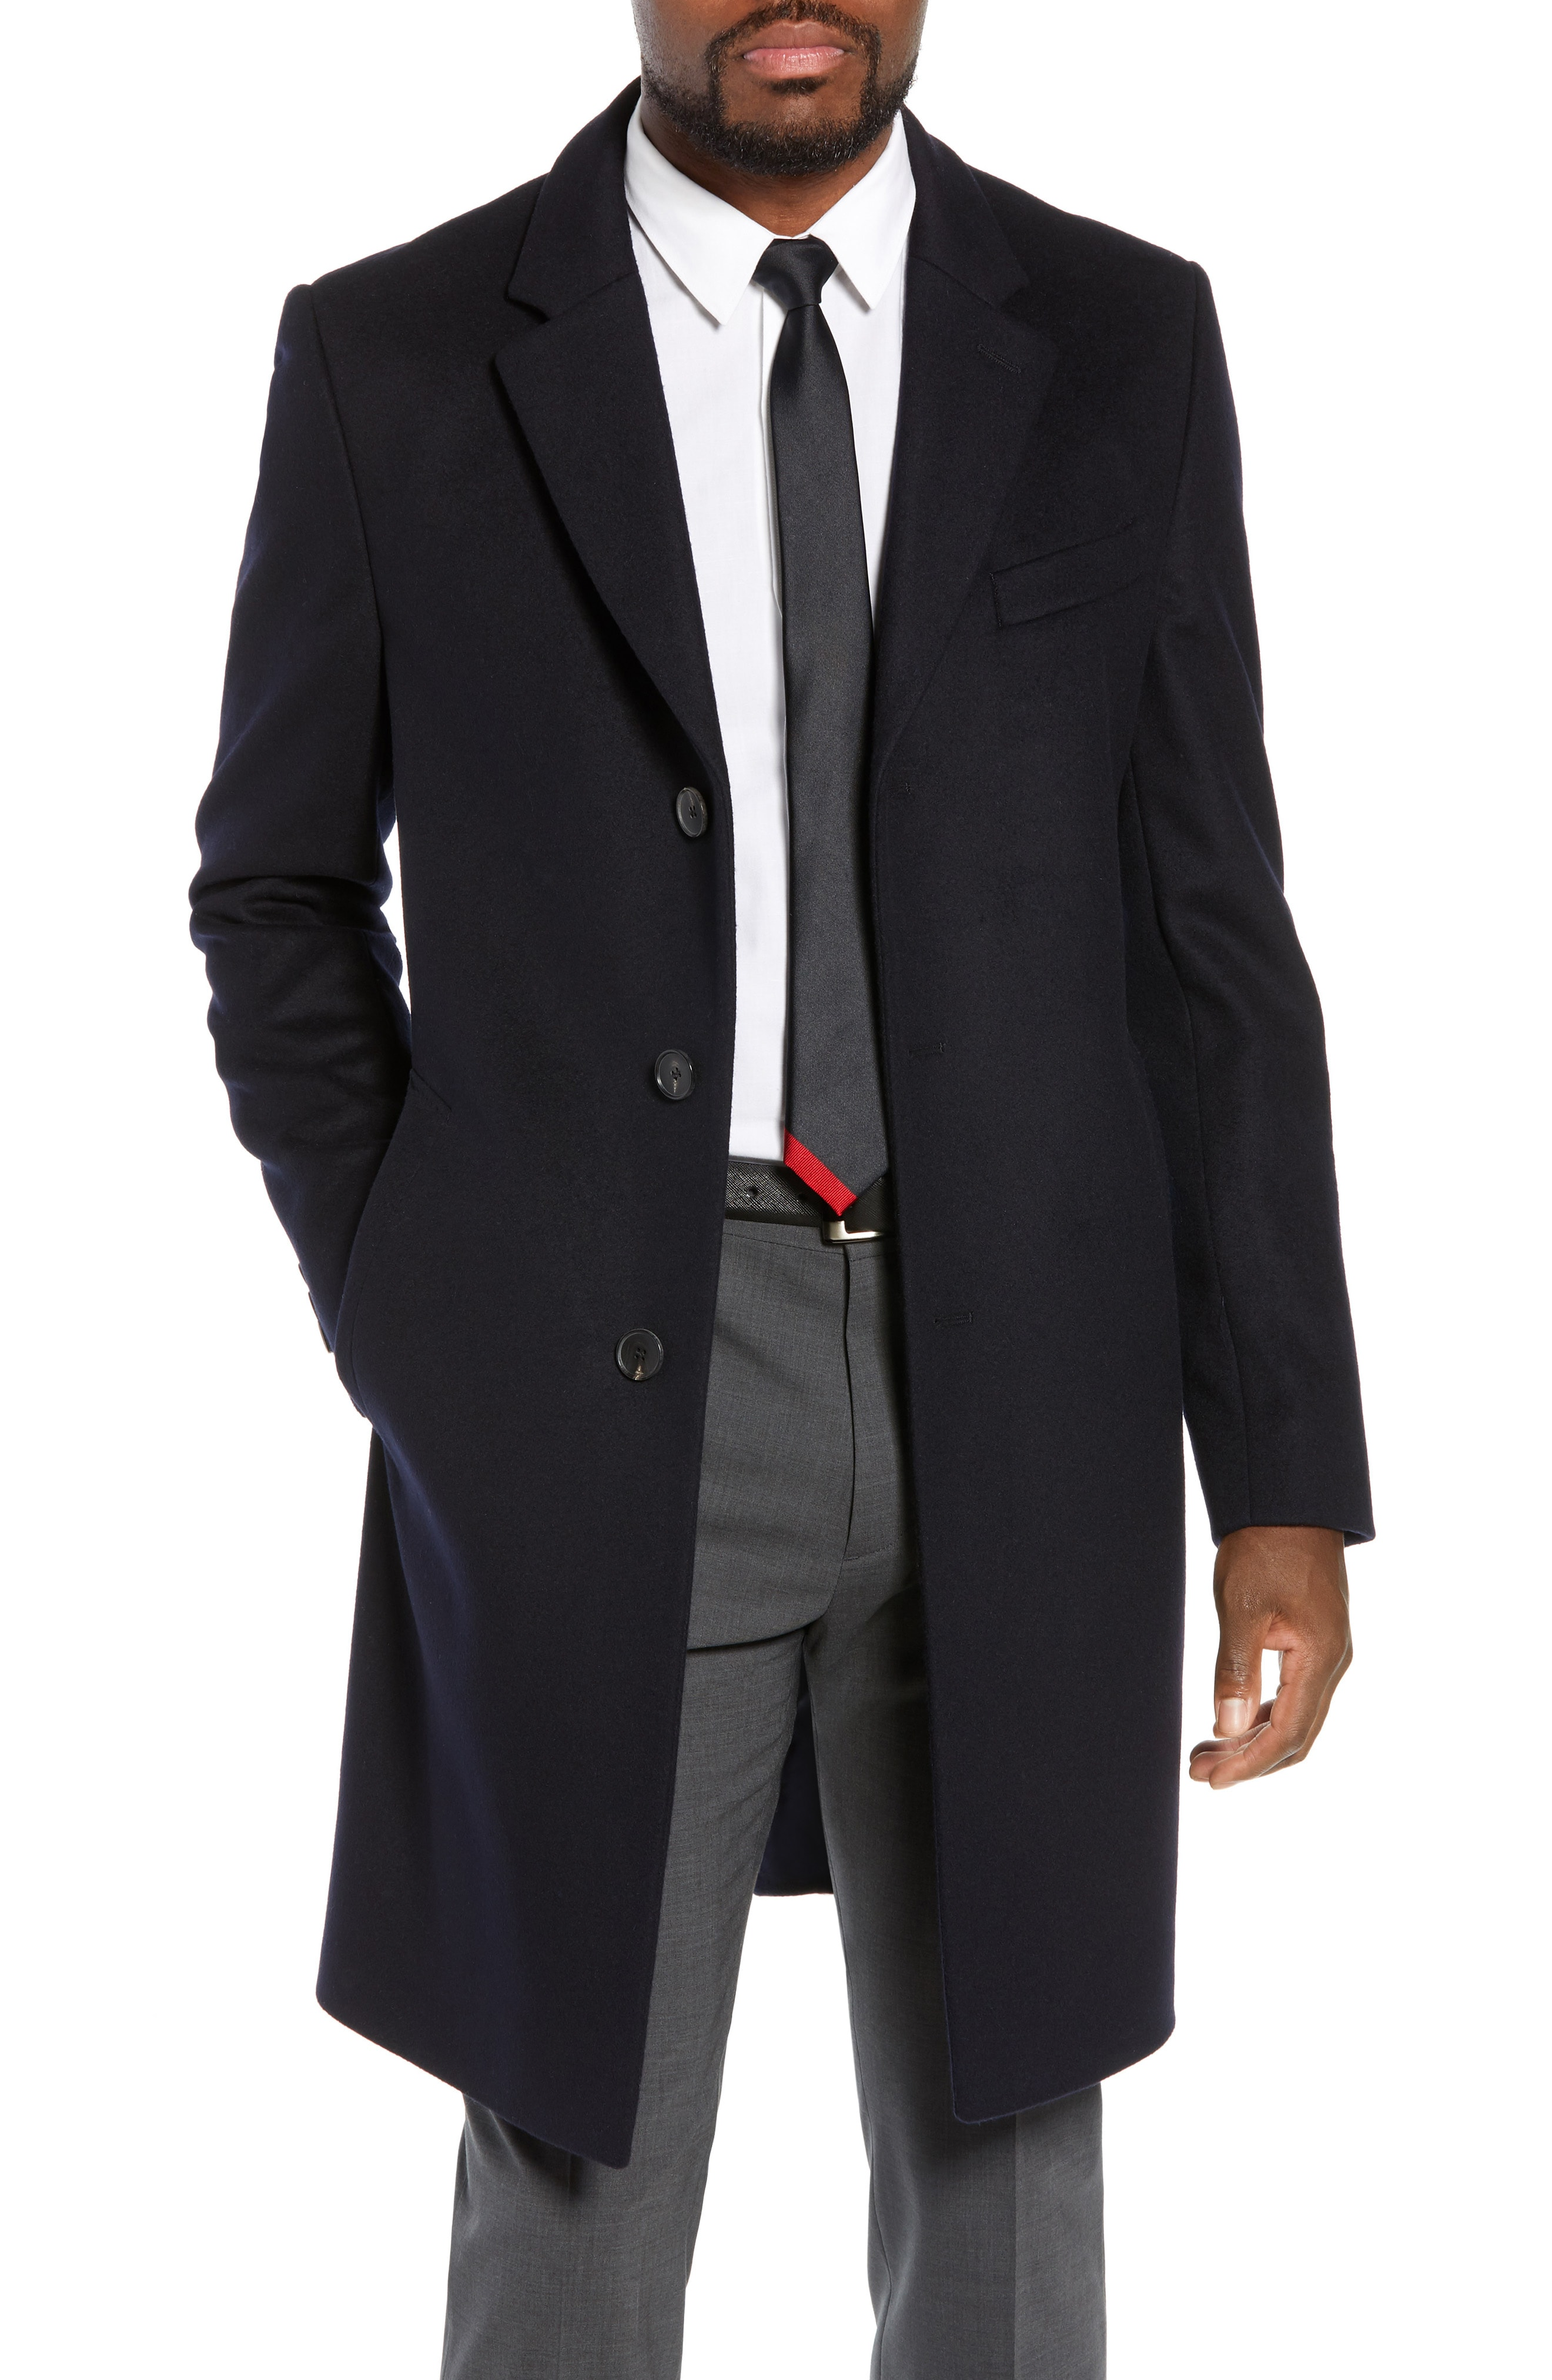 Hugo Boss Men's Coats & Jackets Suits, Shirts & Jeans | Nordstrom